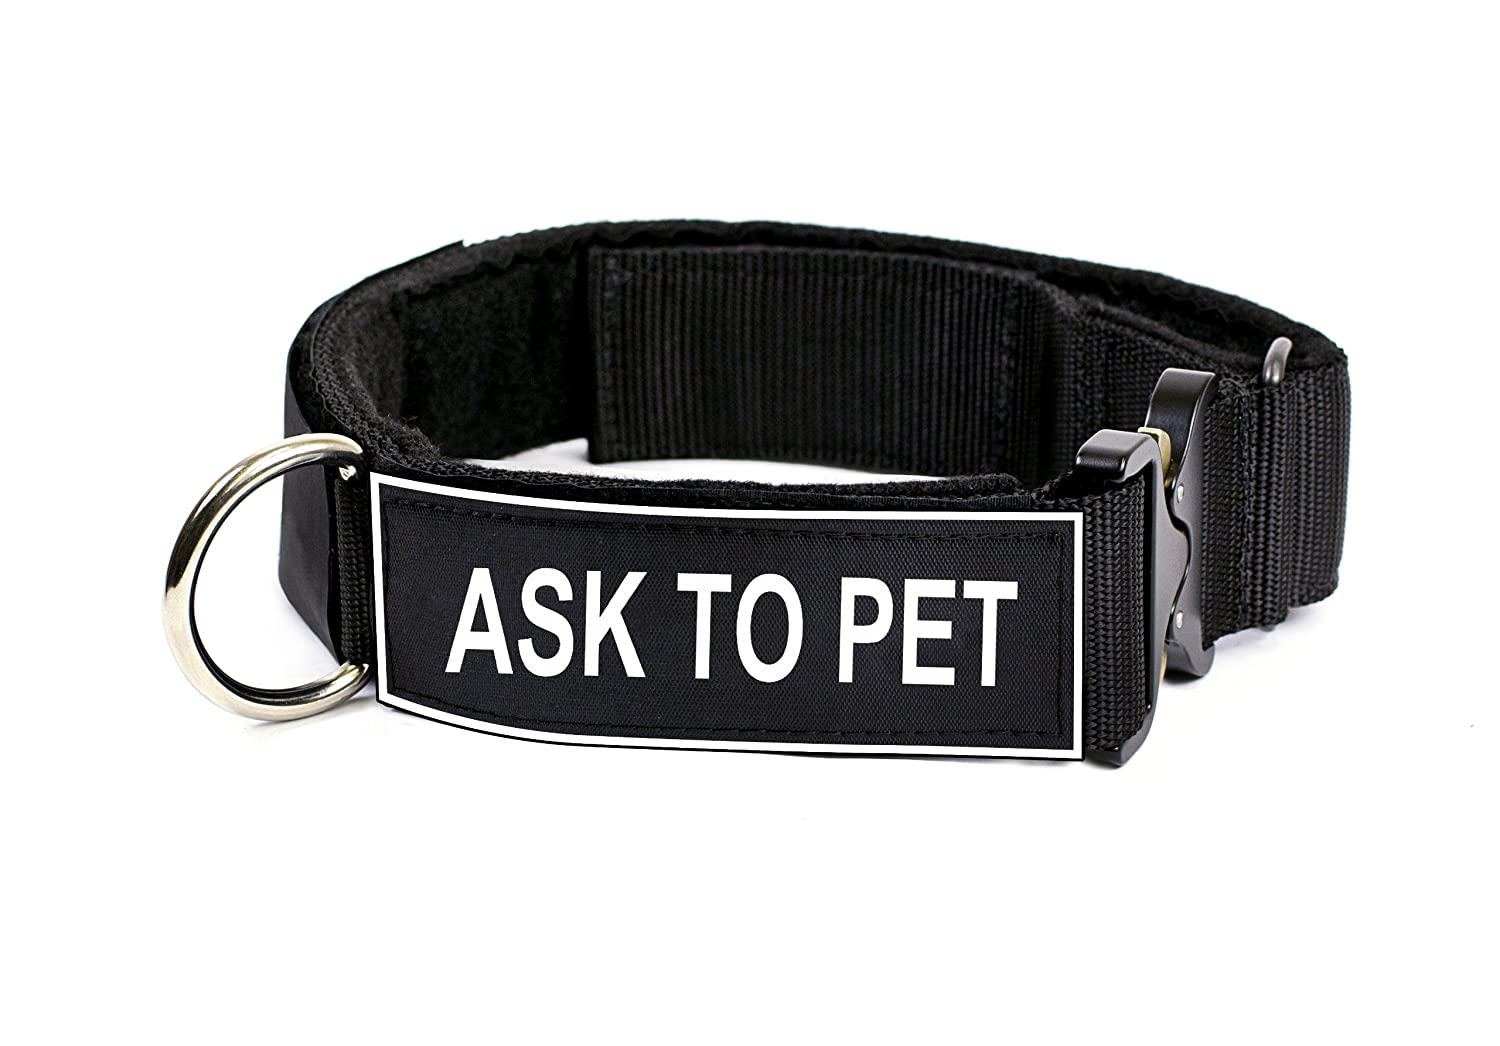 Dean & Tyler 21 to 26-Inch Strong Nylon Cobra Patch Collar With Felt Padding, Ask to Pet Patches, Medium, Black